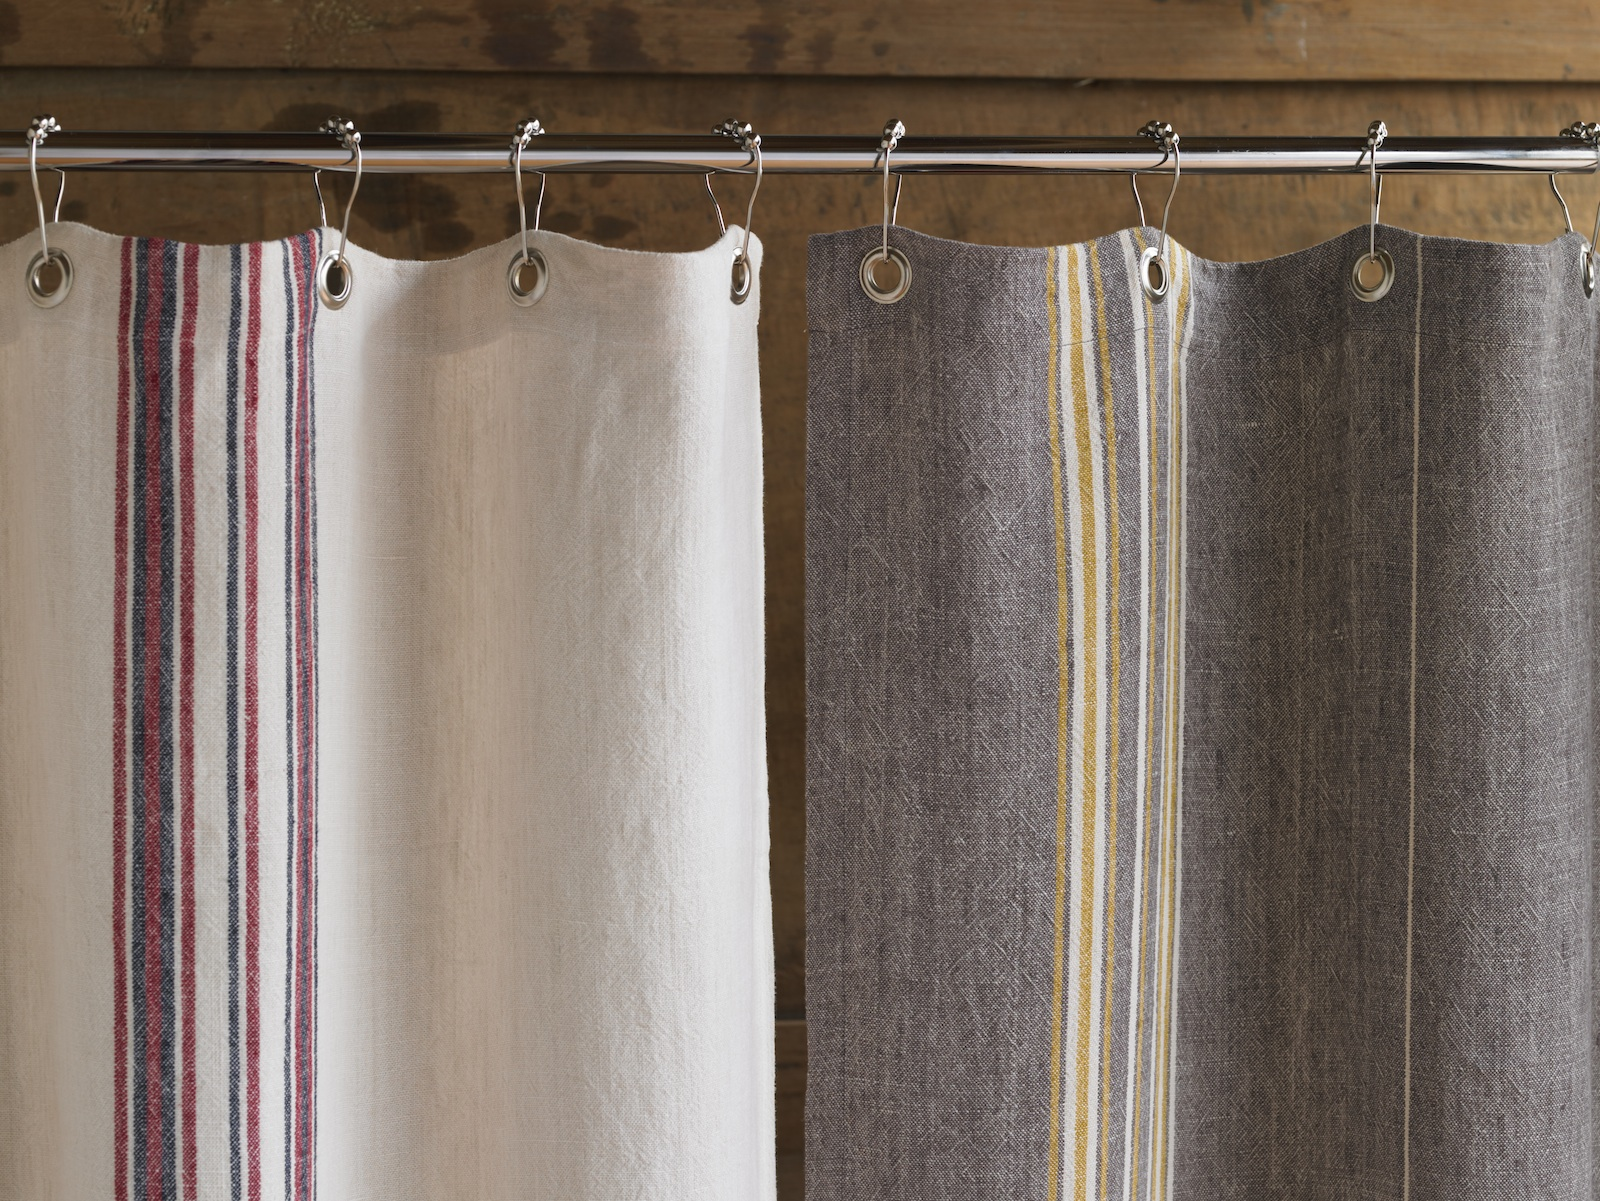 Among Wegman's latest designs are shower curtains and duvet covers made of soft, slubbed linen with yarn dyed stripes.